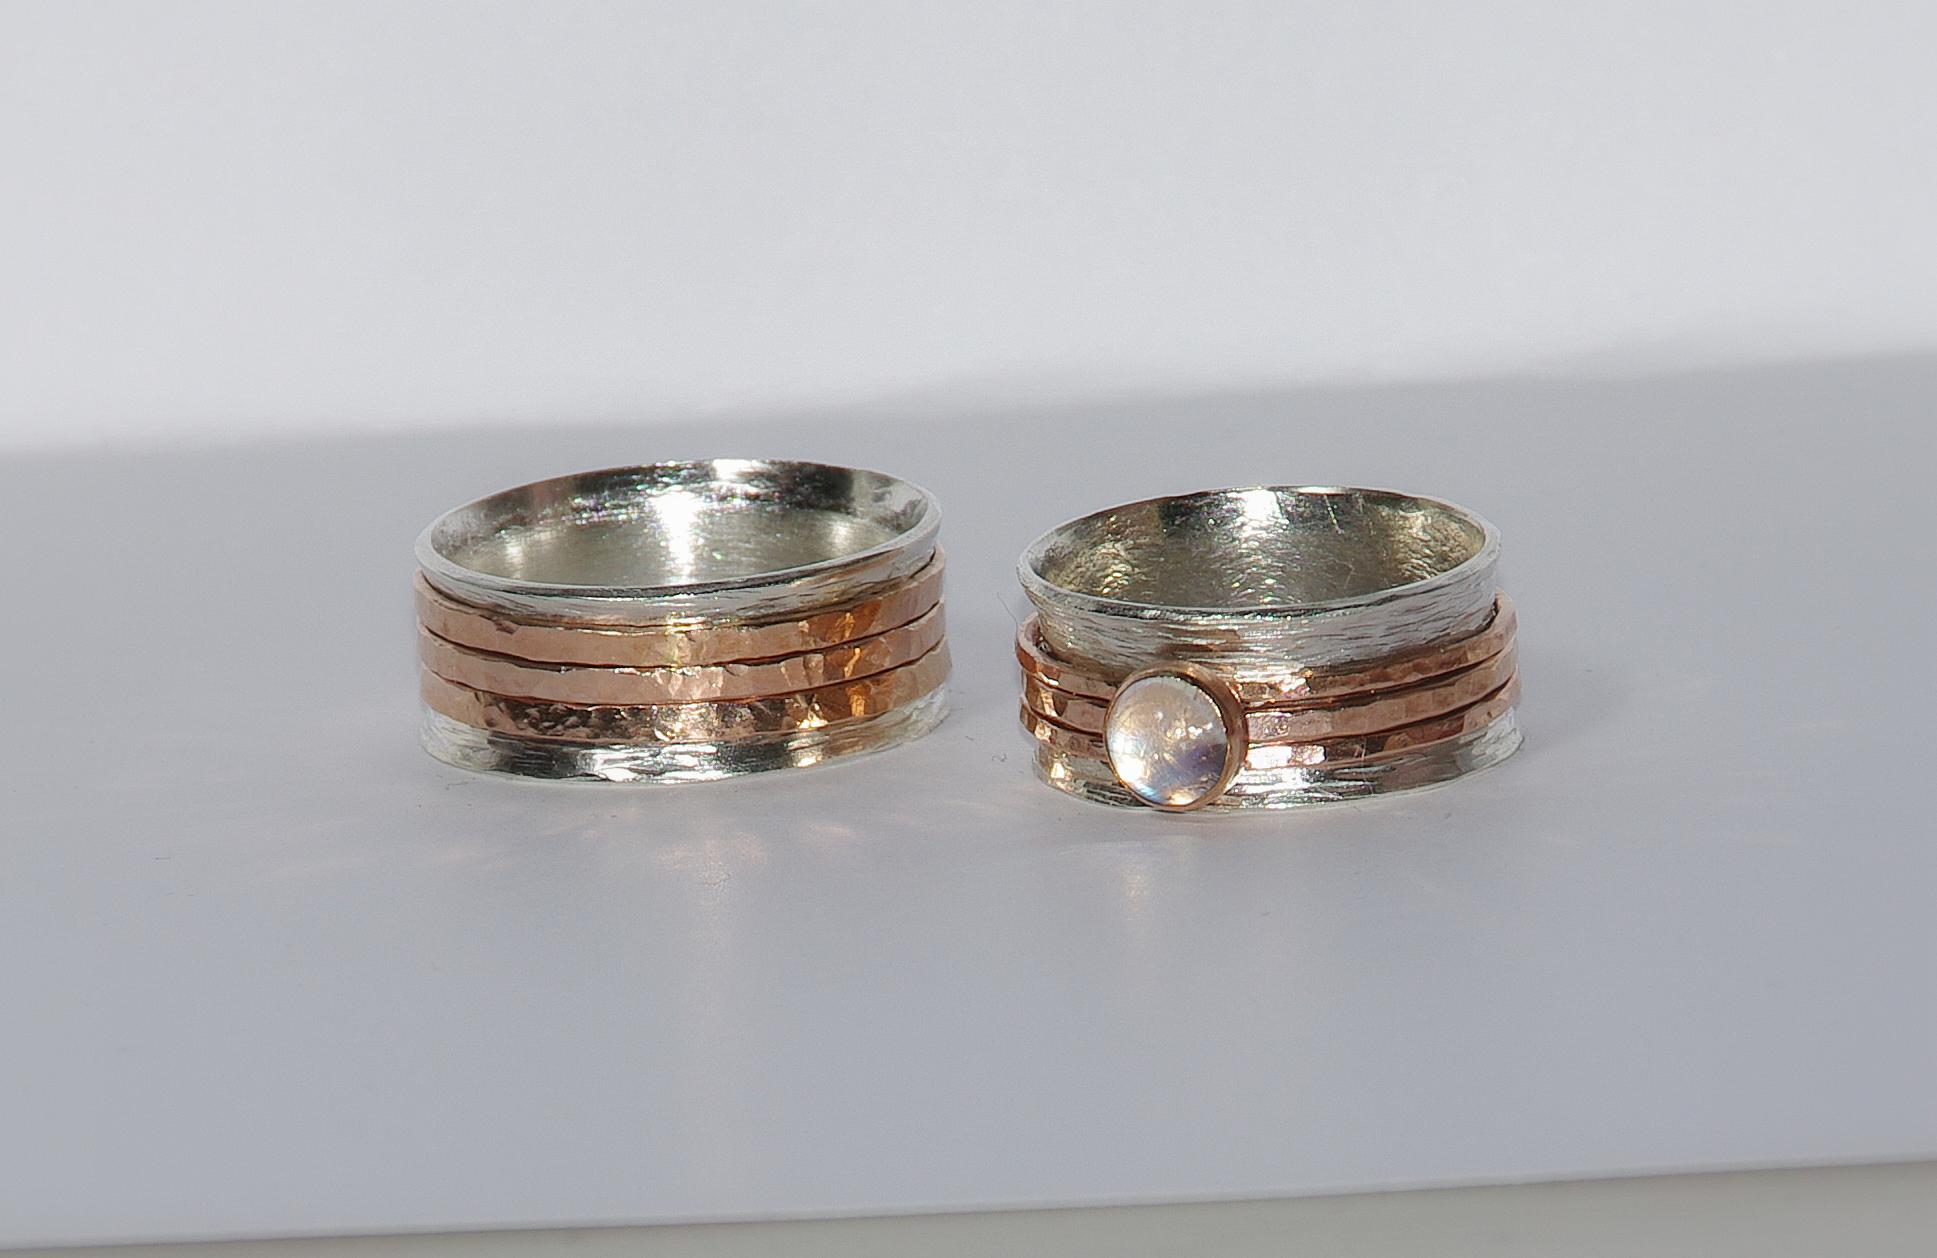 unique wedding rings stackable wedding bands Personalized unique wedding bands custom engraved words inside single bands